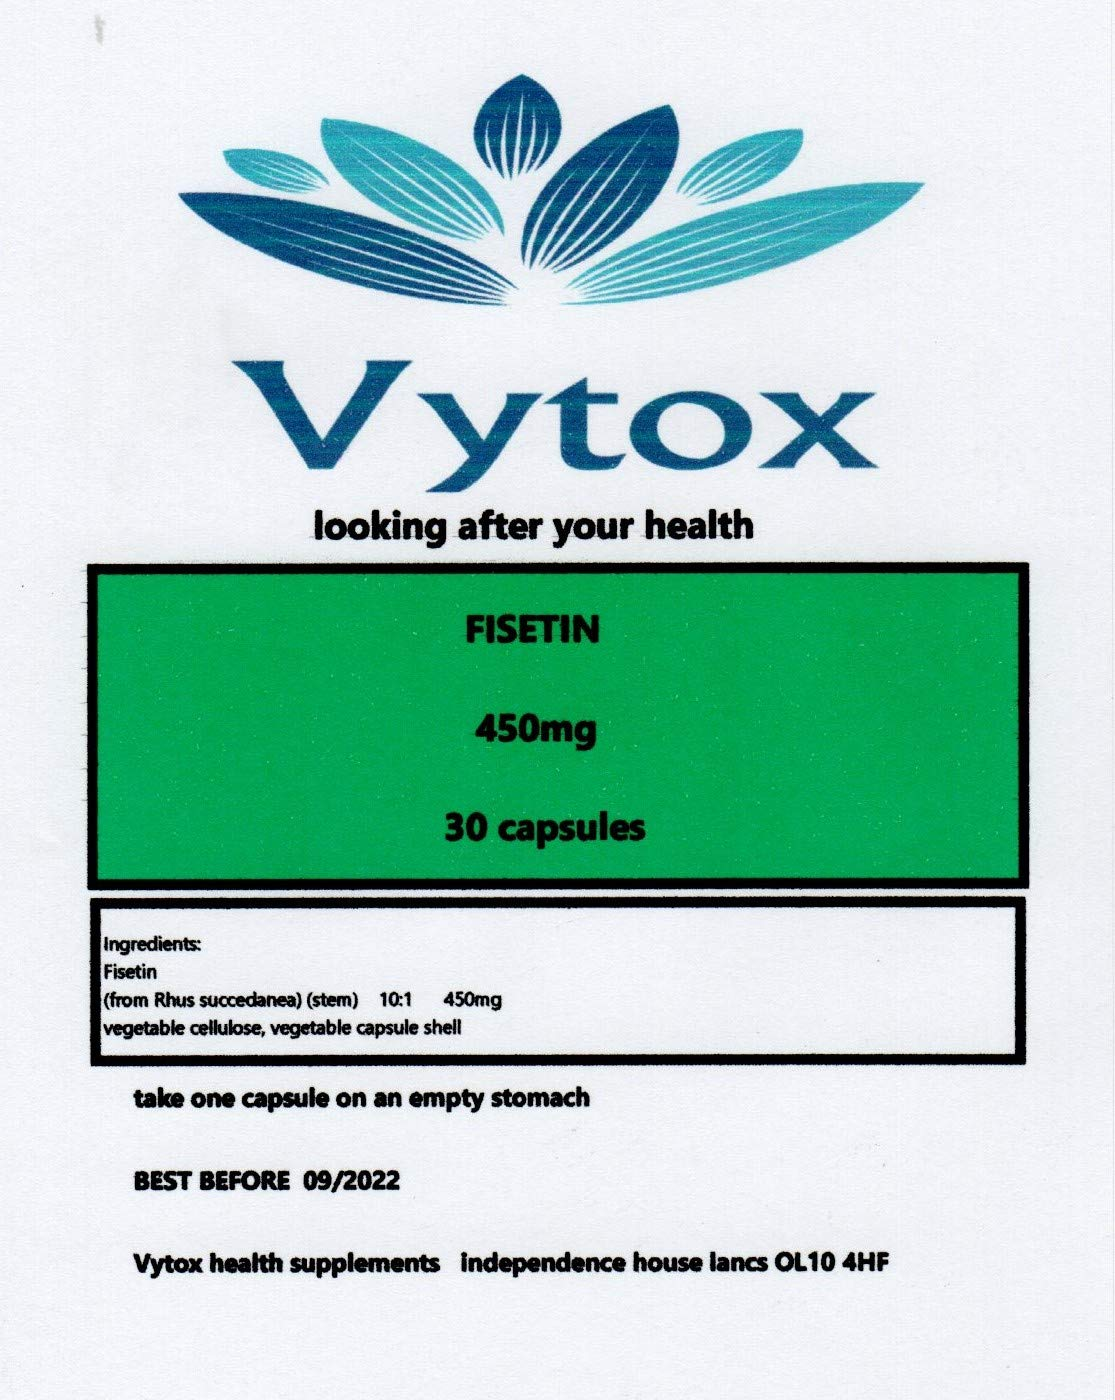 Fisetin (450mg) 30 Capsules, 1 Month Supply, by vytox, Vegetarian